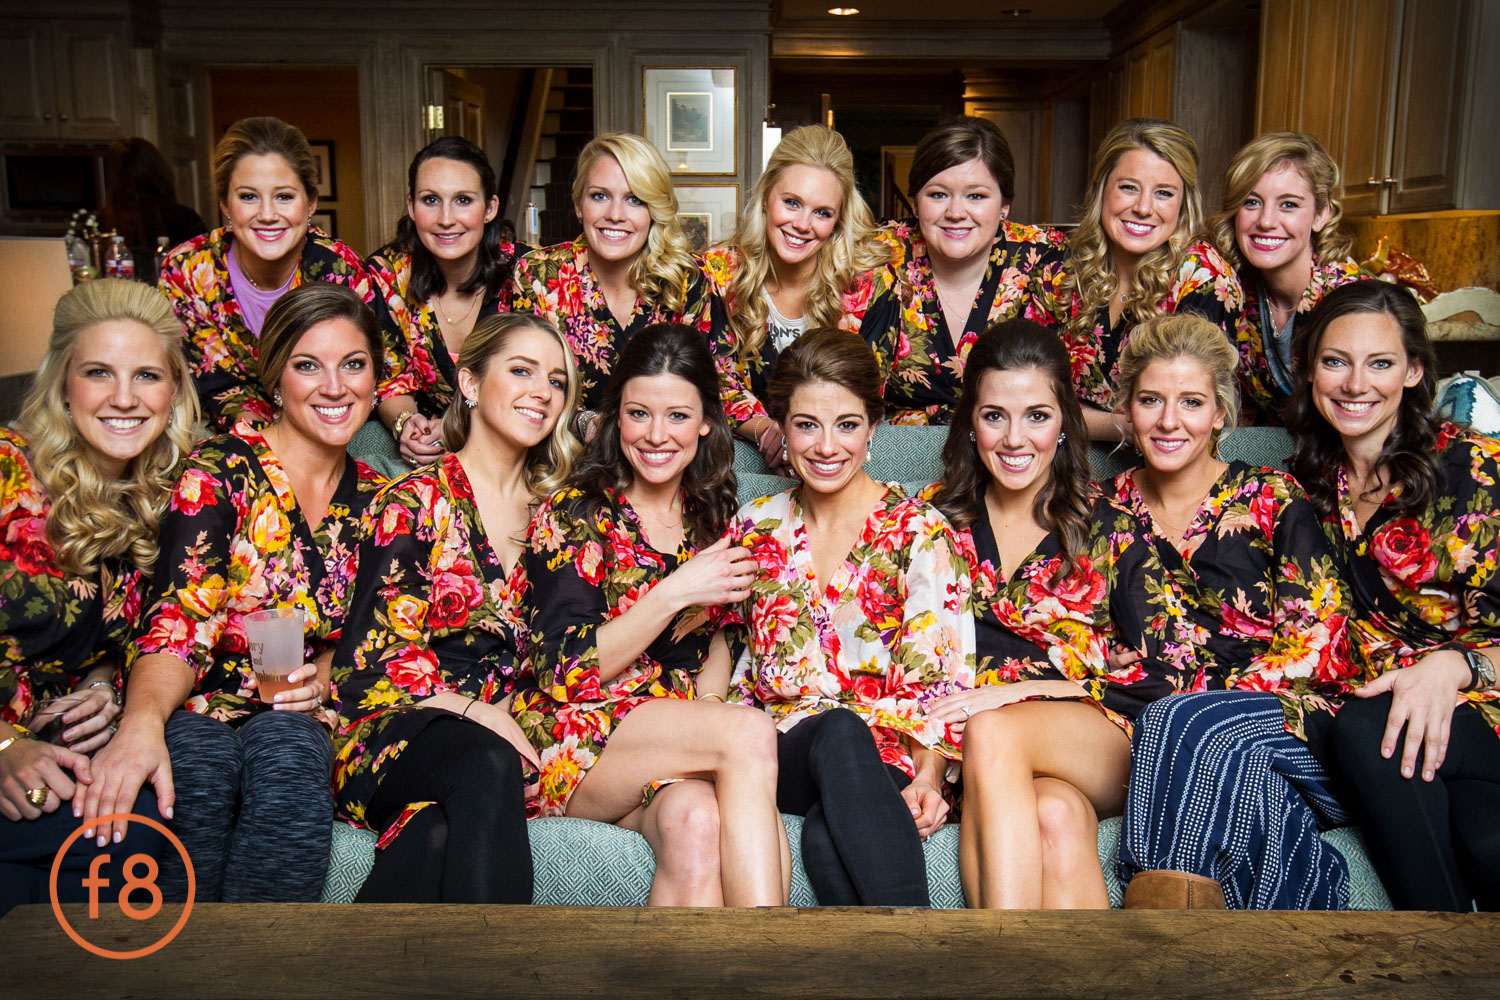 Bridesmaids with the bride at her home in Dallas.